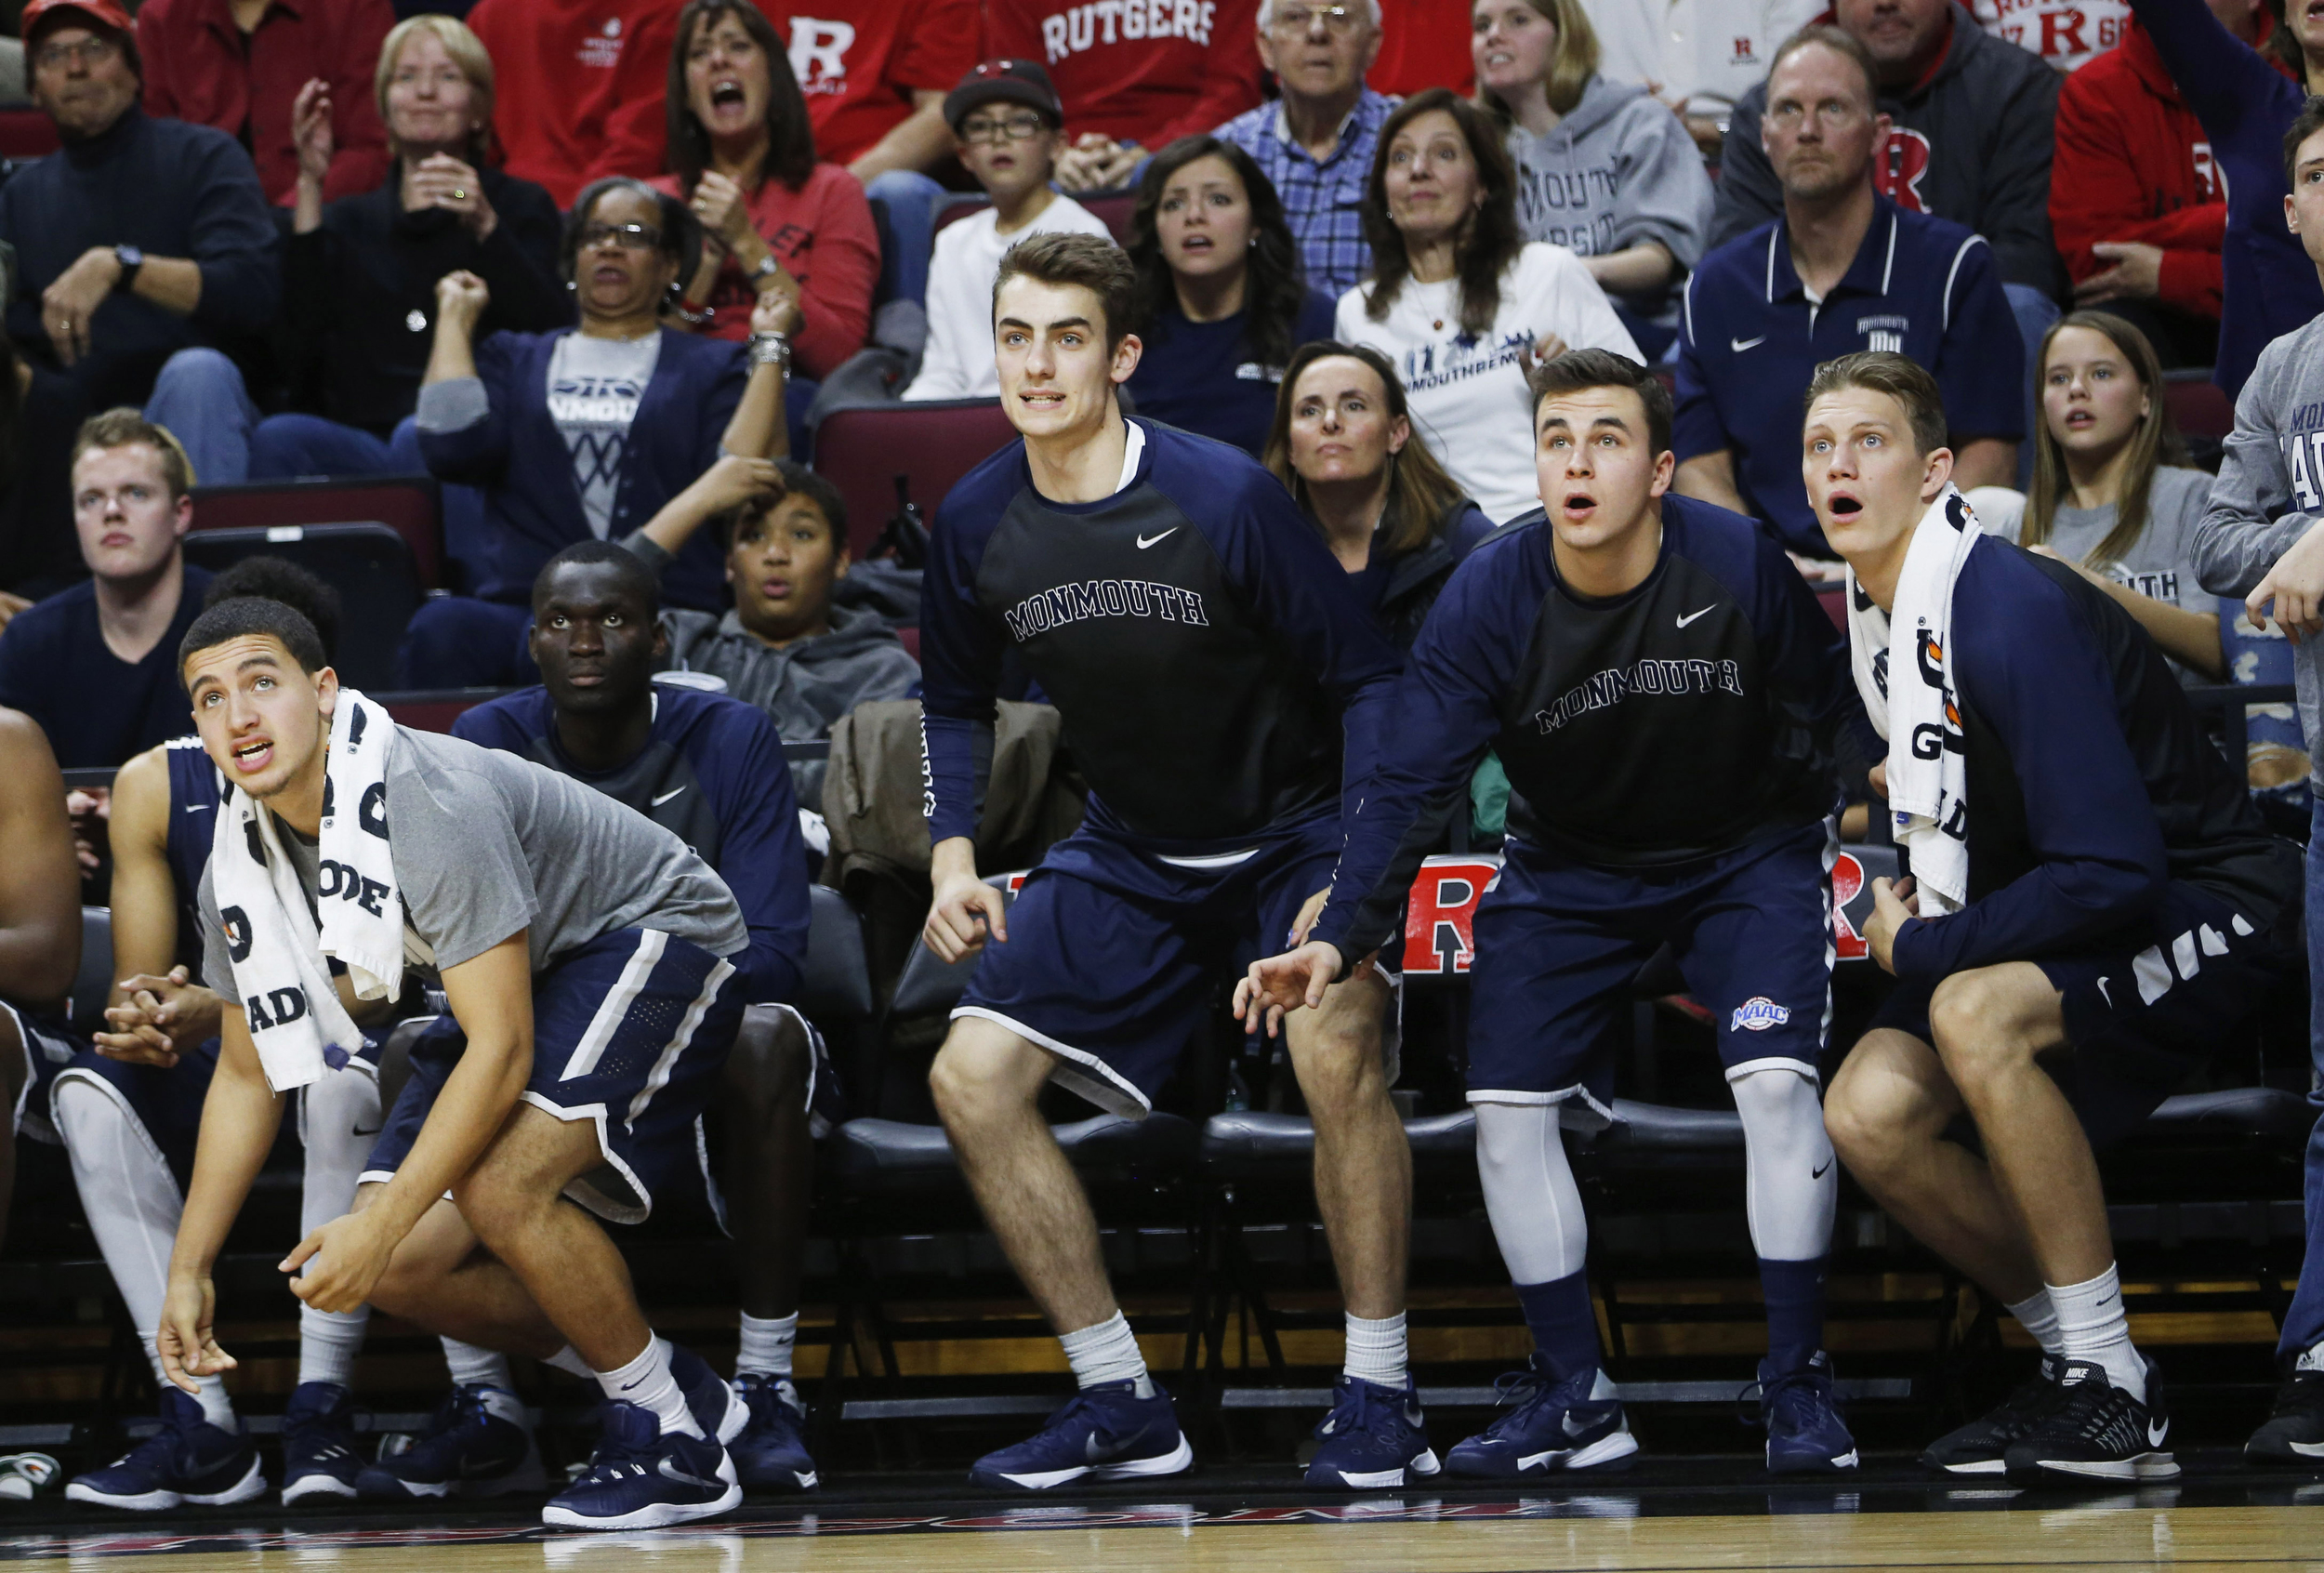 The Monmouth University bench waits to see if the shot drops as they go through a range of emotions as Monmouth defeated Rutgers 73-67 in the Rutgers versus Monmouth University mens basketball game at the RAC in Piscataway 12/20/15